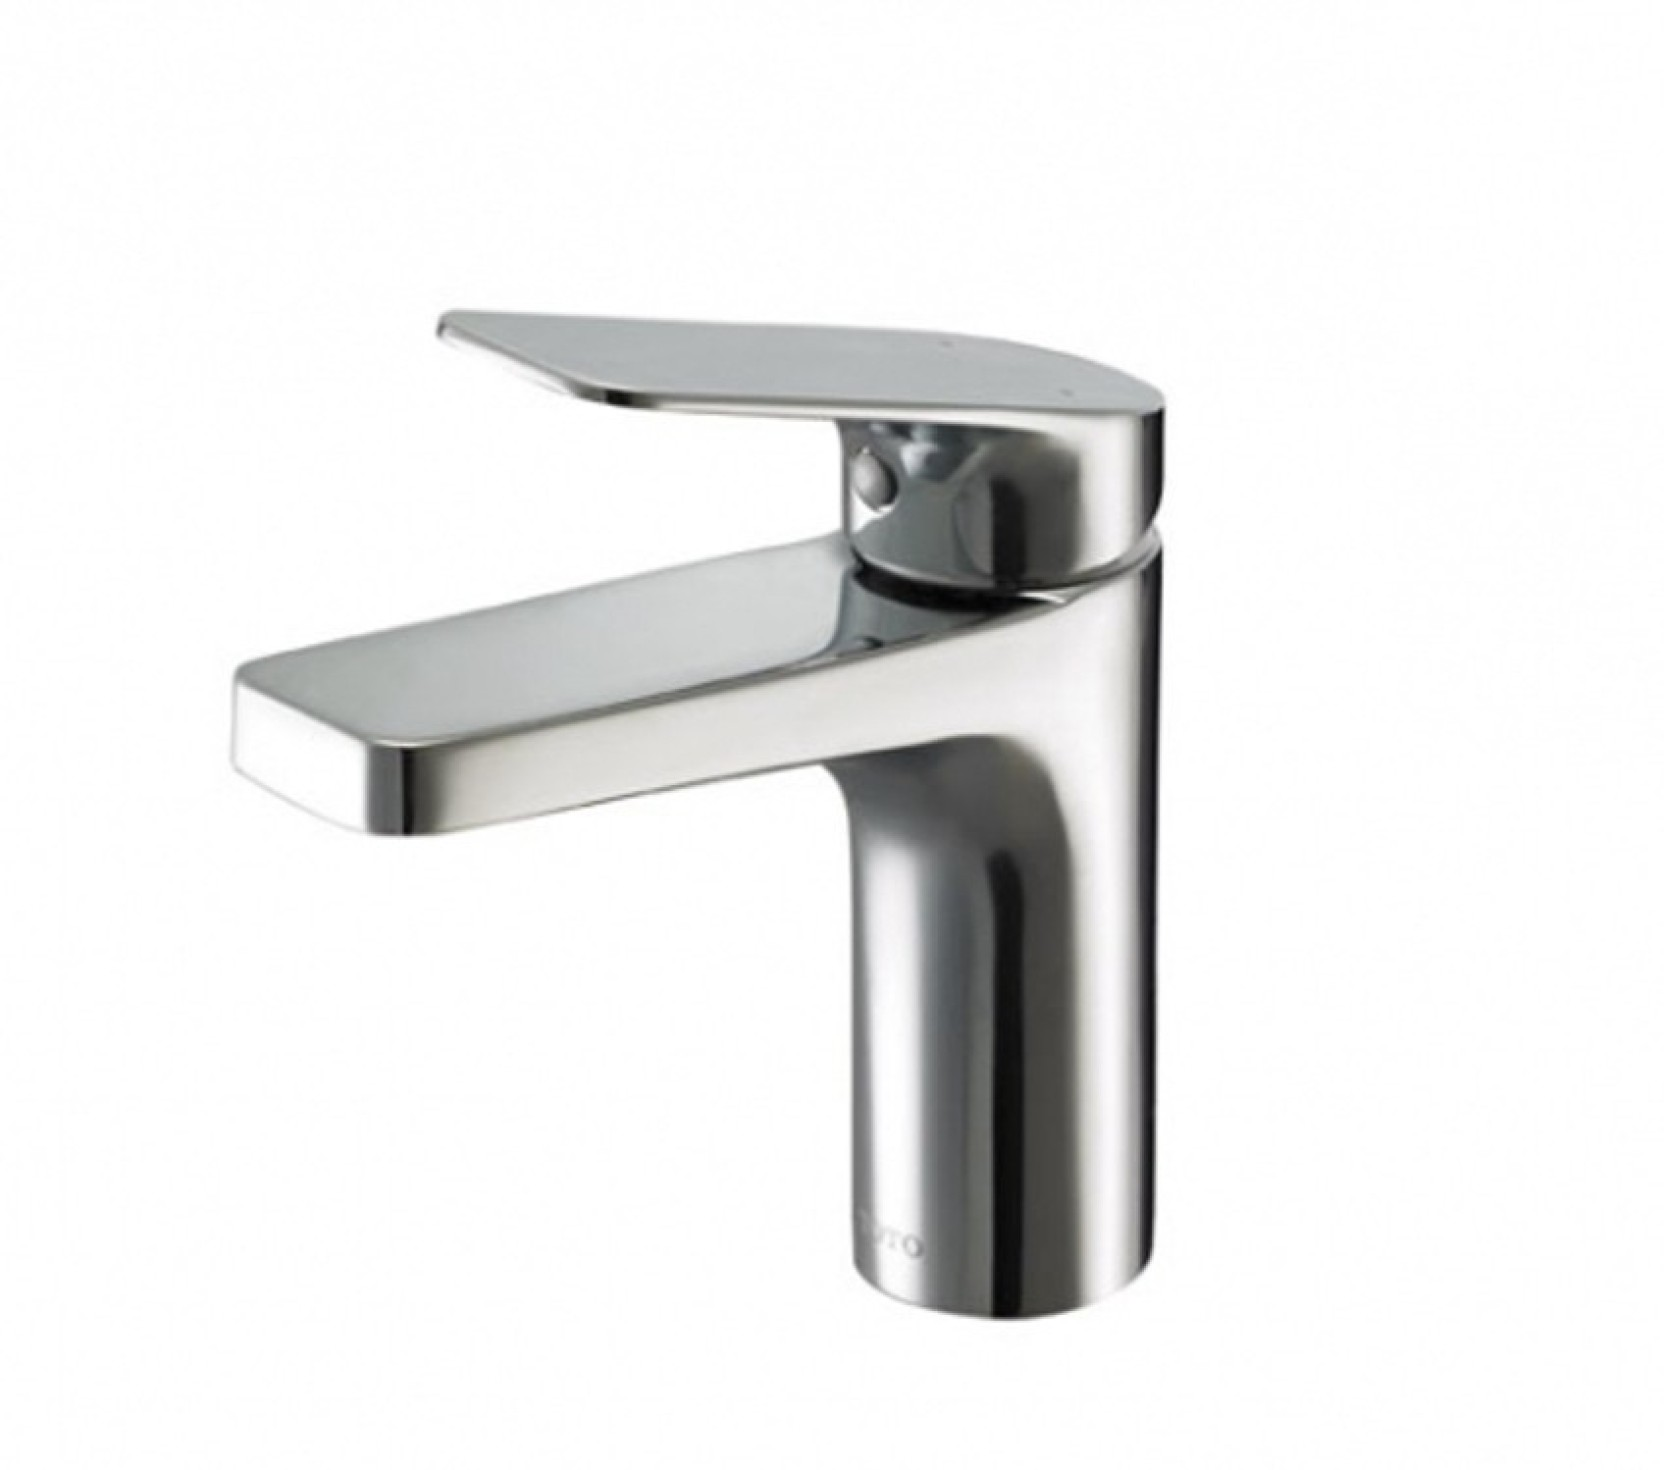 Toto TTLR302FV-1 Reis Extended Single Lever Lavatory Faucet With Pop ...